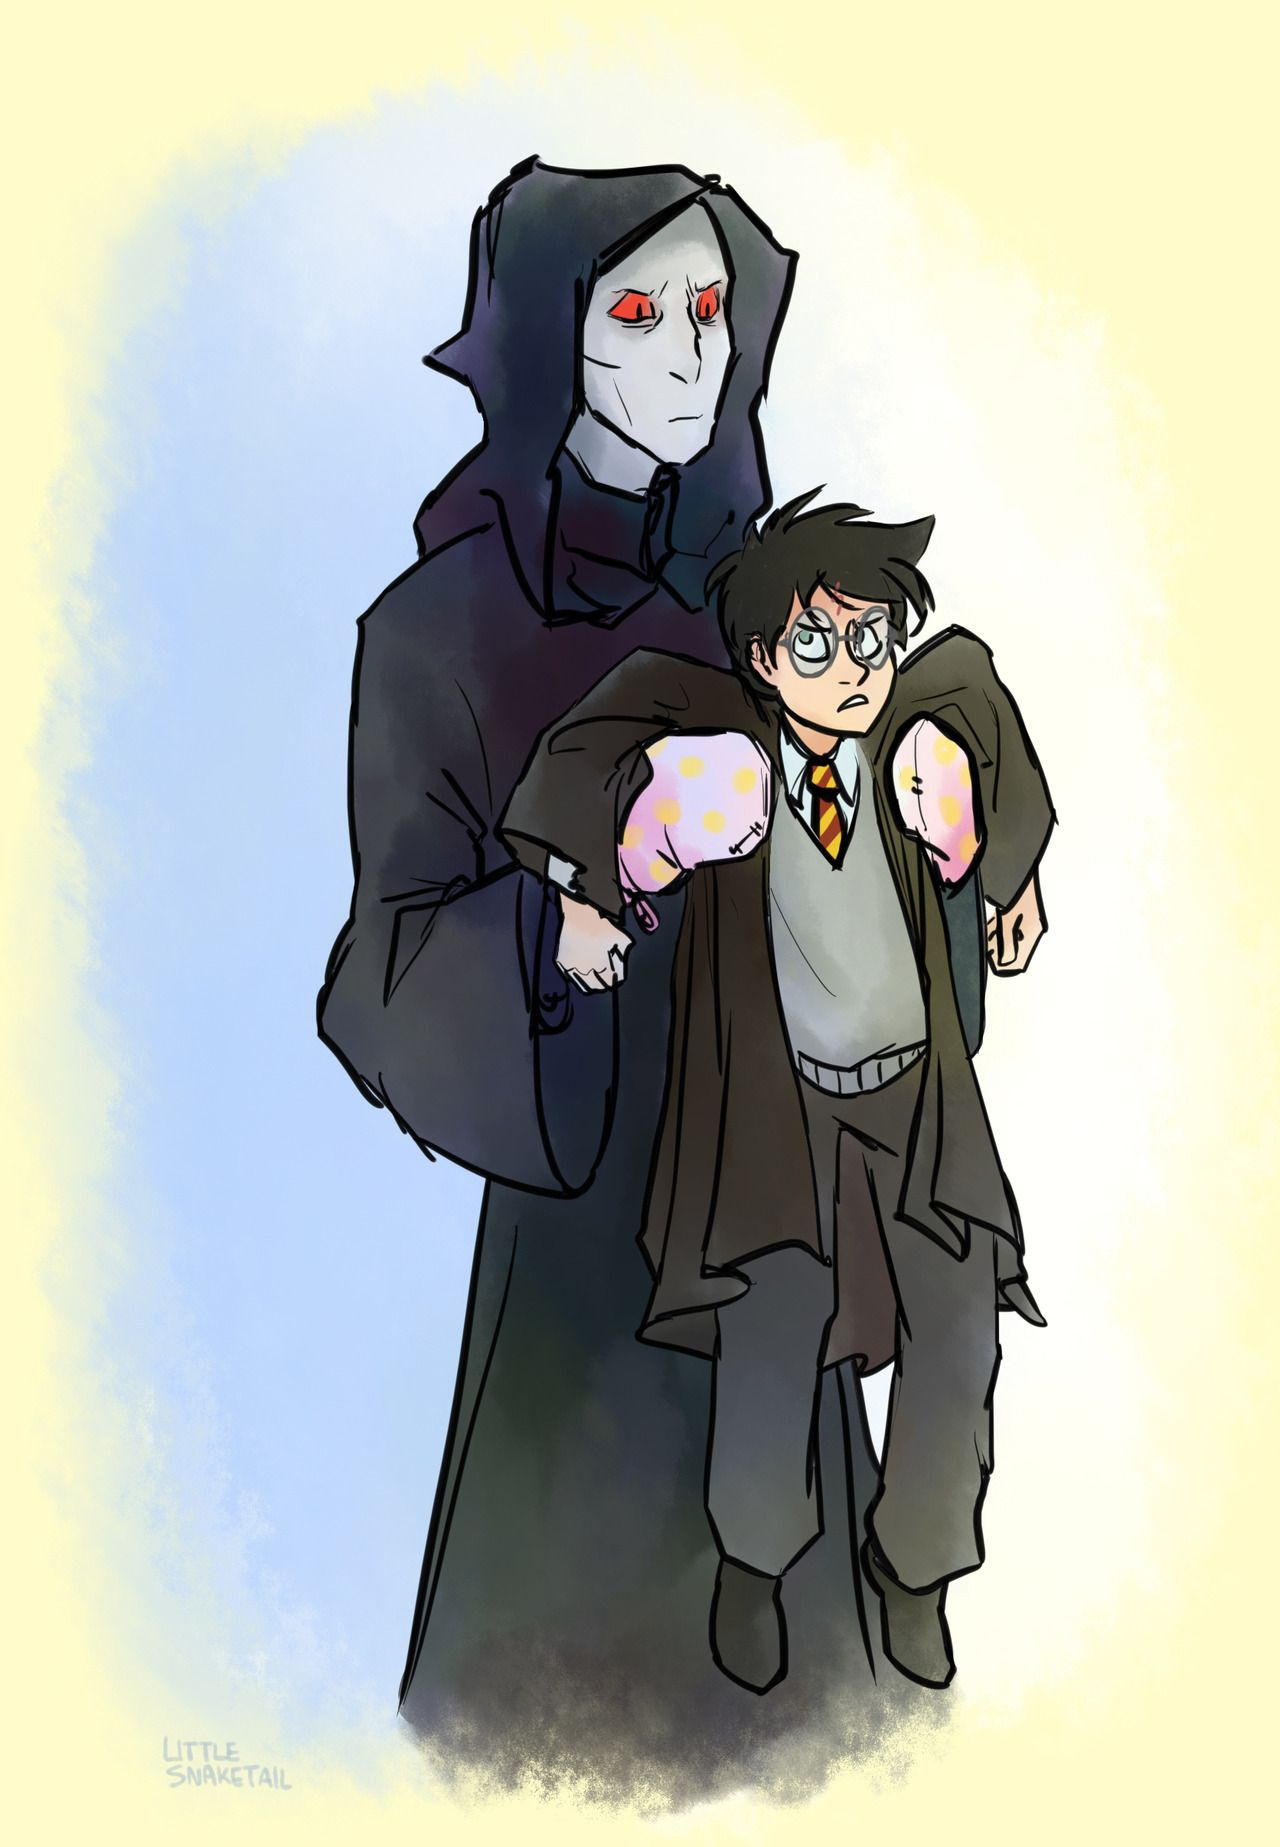 Nonsensical Au Where Voldemort Just Decides To Wear Oven Mitts When Touching Harry Harry Potter Fan Art Harry Potter Drawings Harry Potter Art